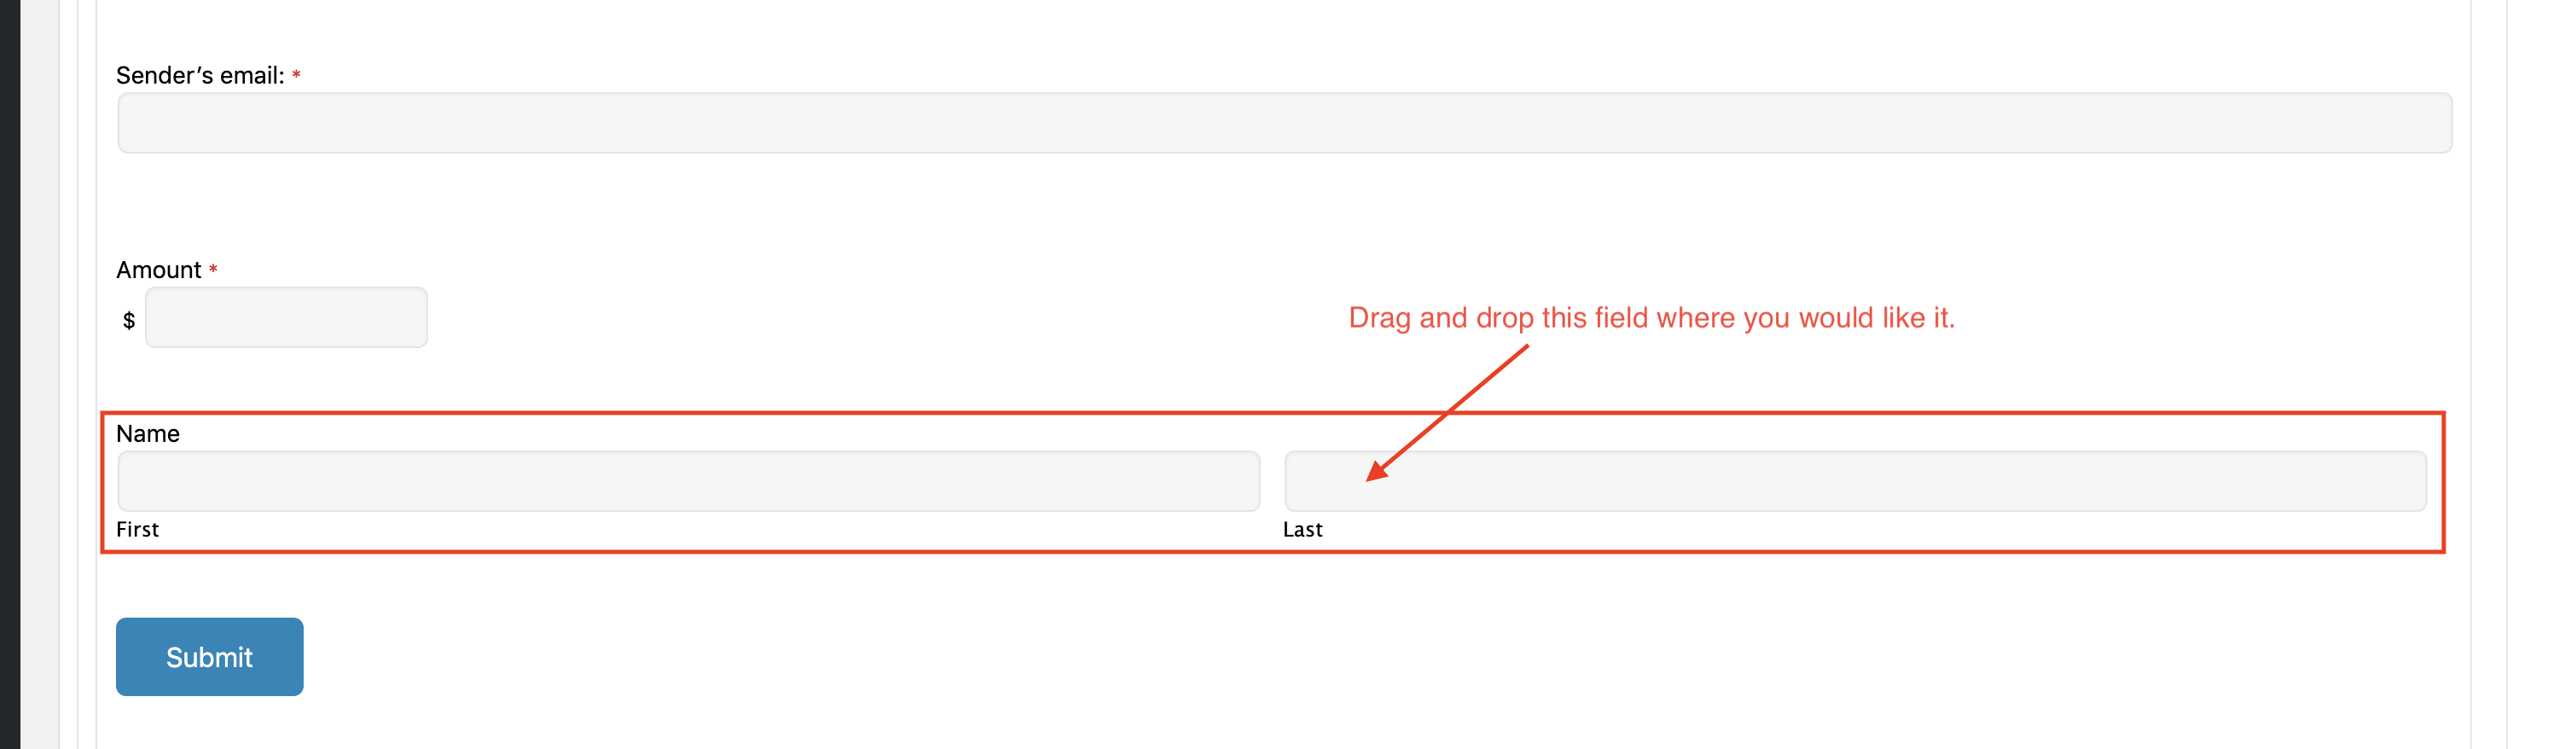 5. Your new field will now be at the bottom of the form. You can drag and drop it where you would like it.